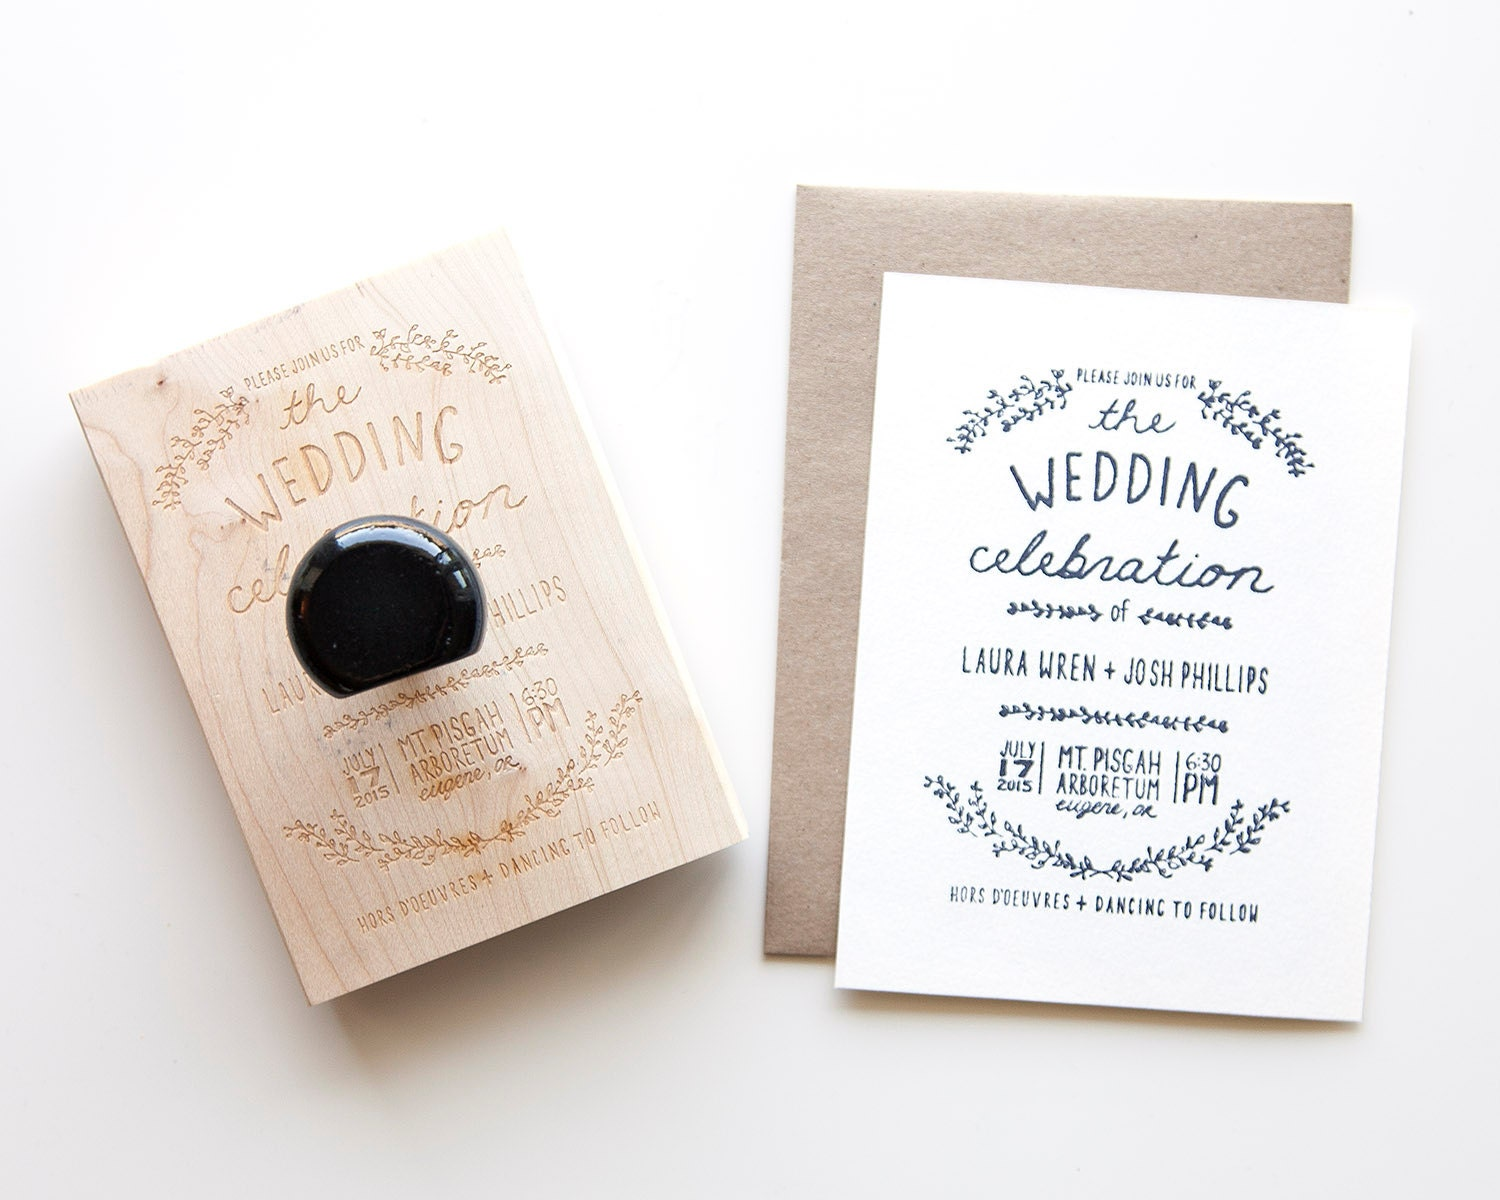 Stamps For Wedding Invitations: Custom Wedding Invitation Stamp // Wedding Stamp By